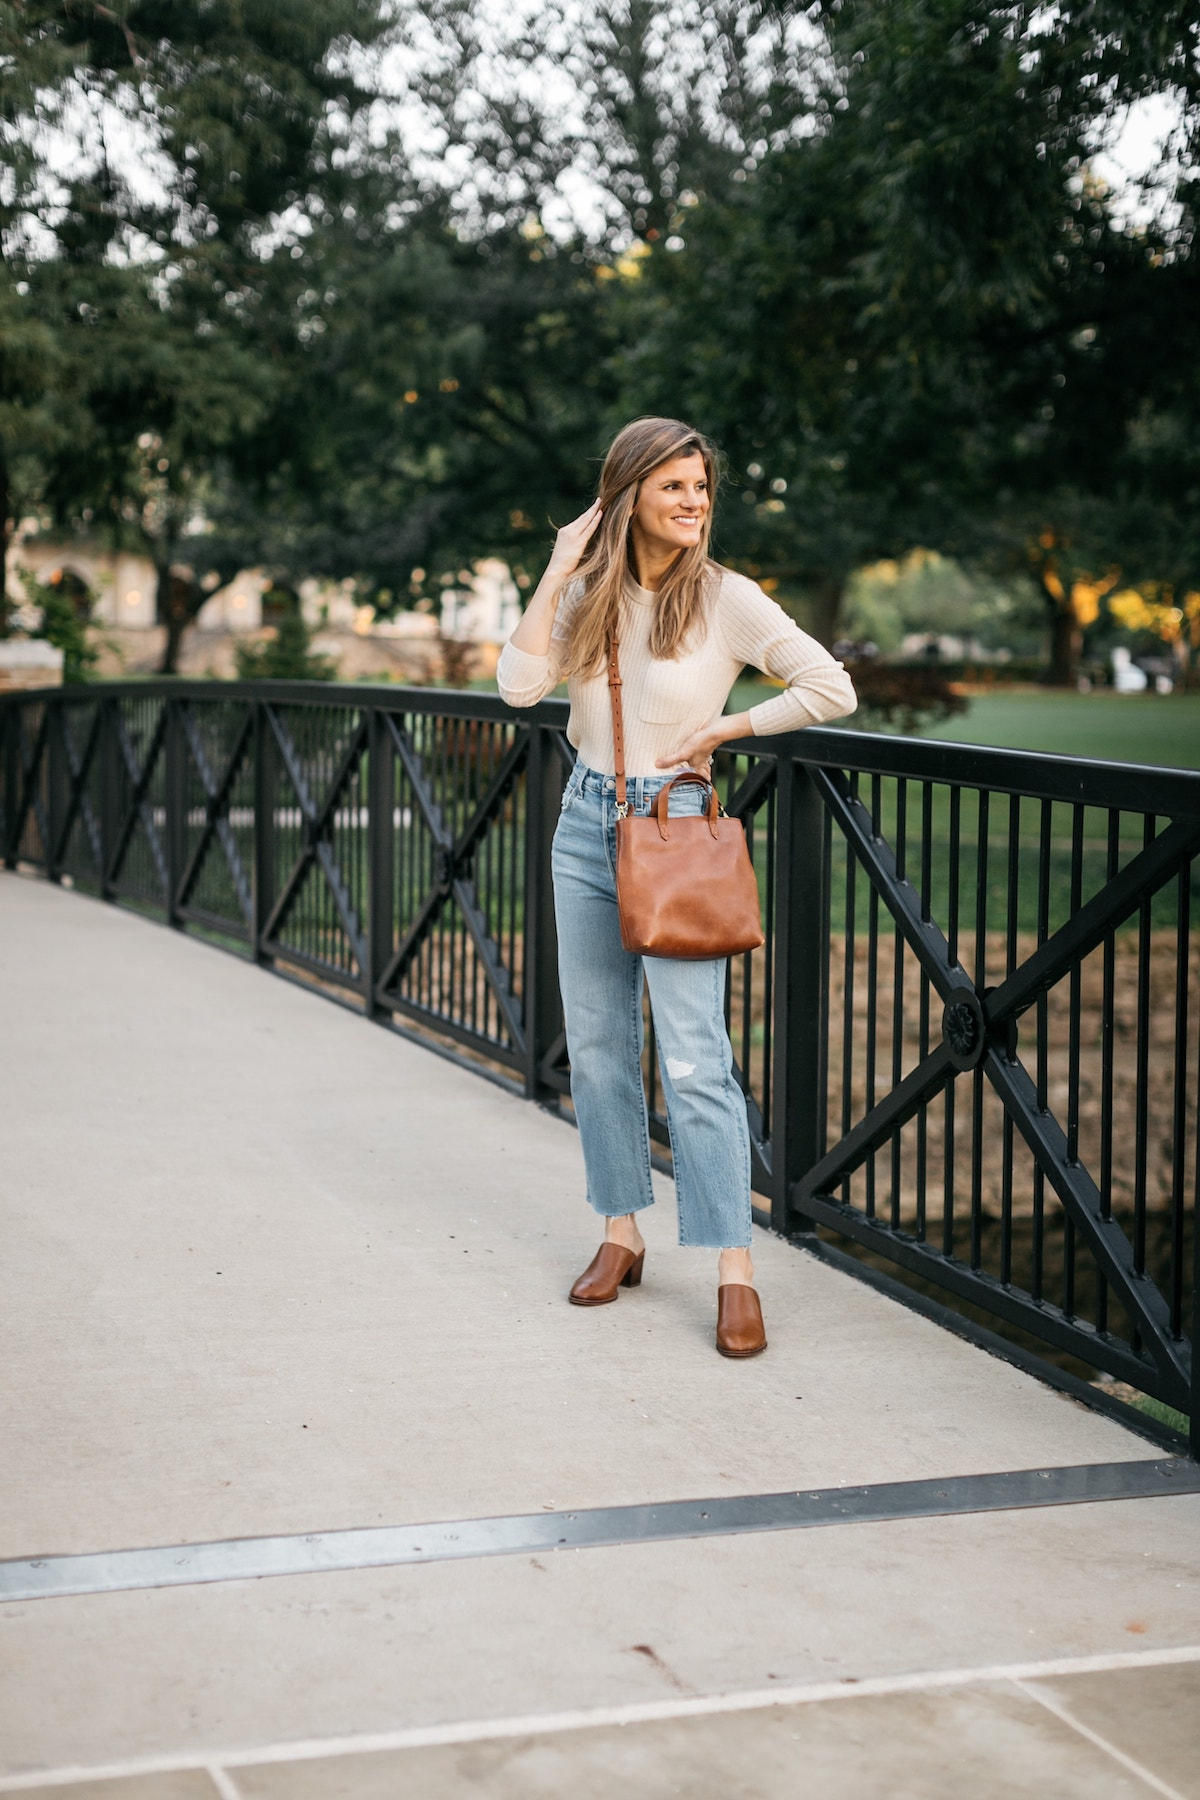 Brighton Butler transitional look, Levi's ribcage denim wide leg, mules, cream sweater, simple transitional outfit